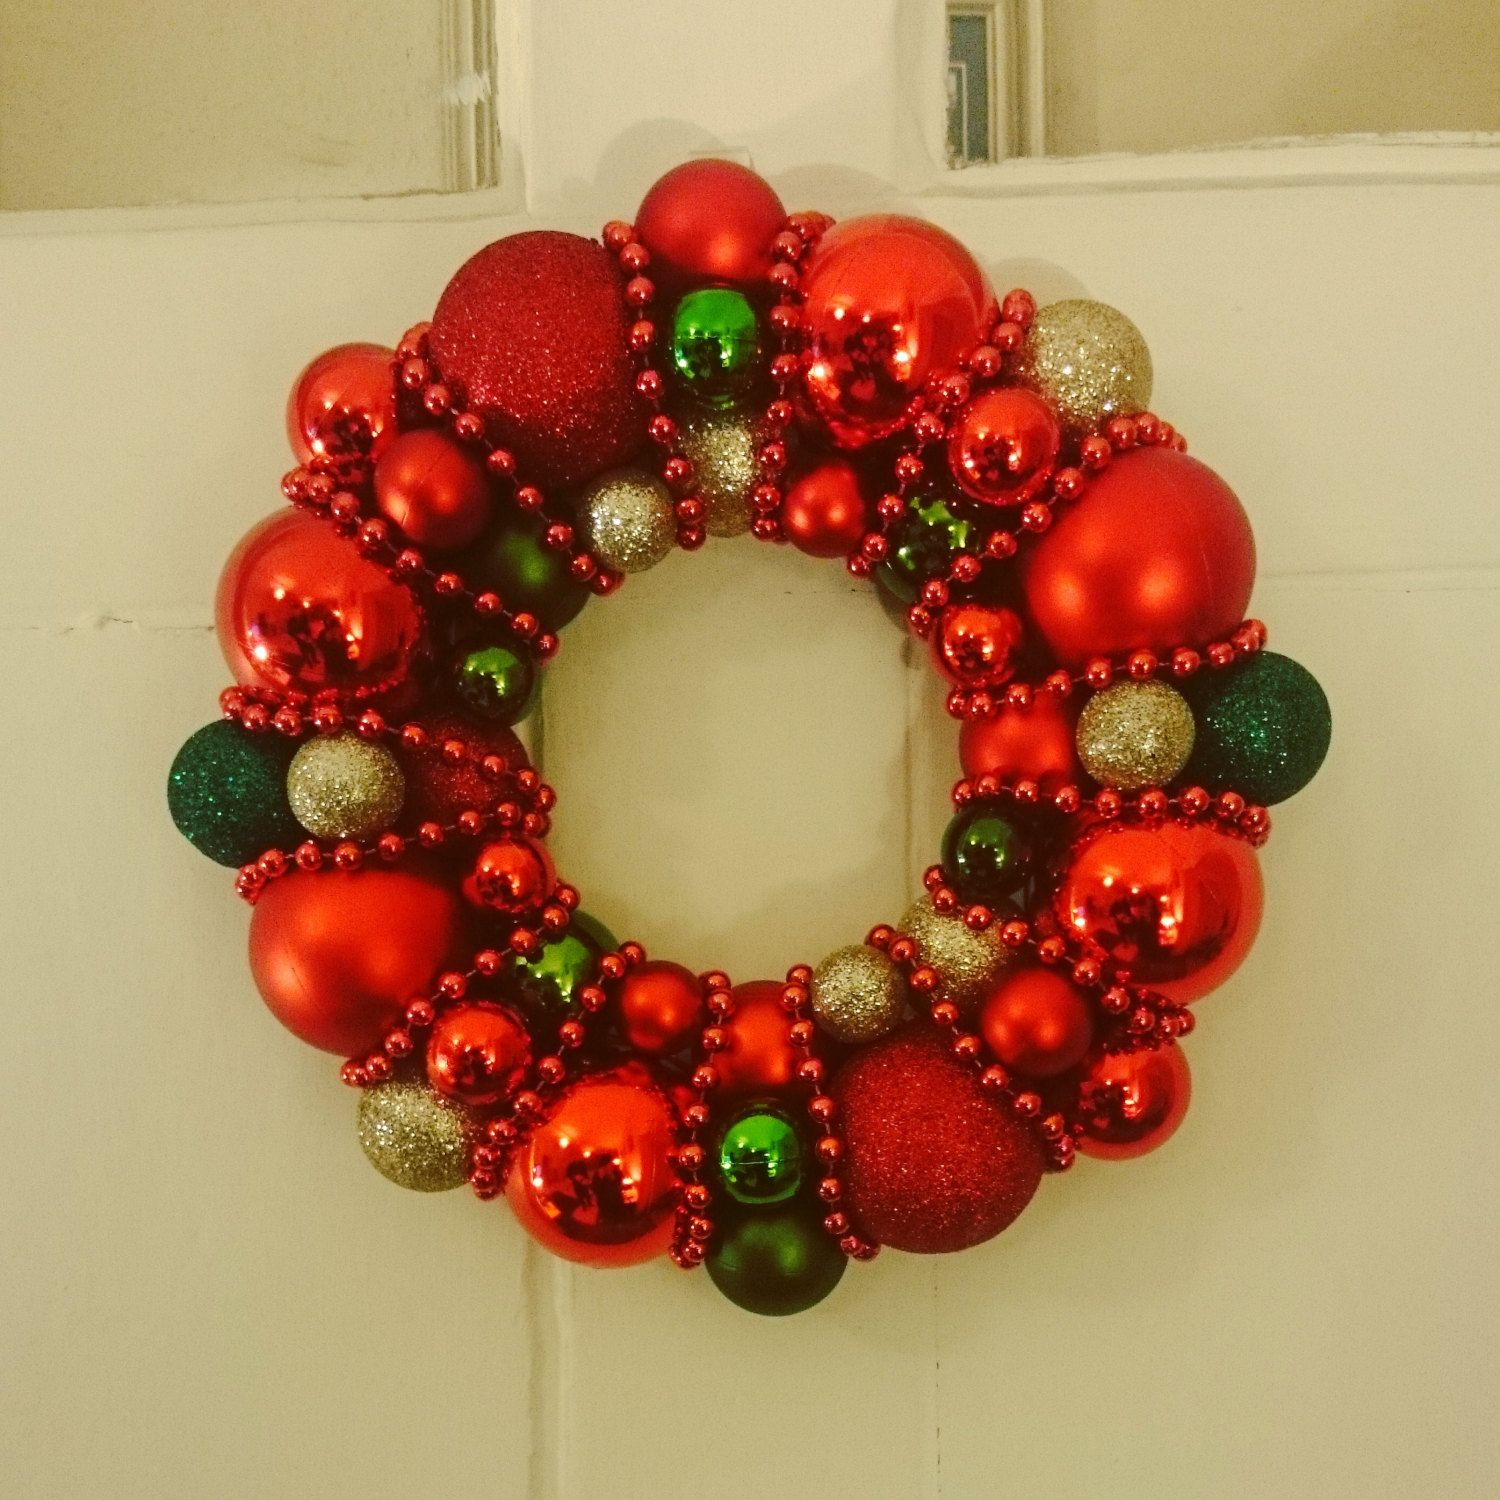 Items similar to Red, Gold and Green Christmas Bauble Wreath Decoration on Etsy